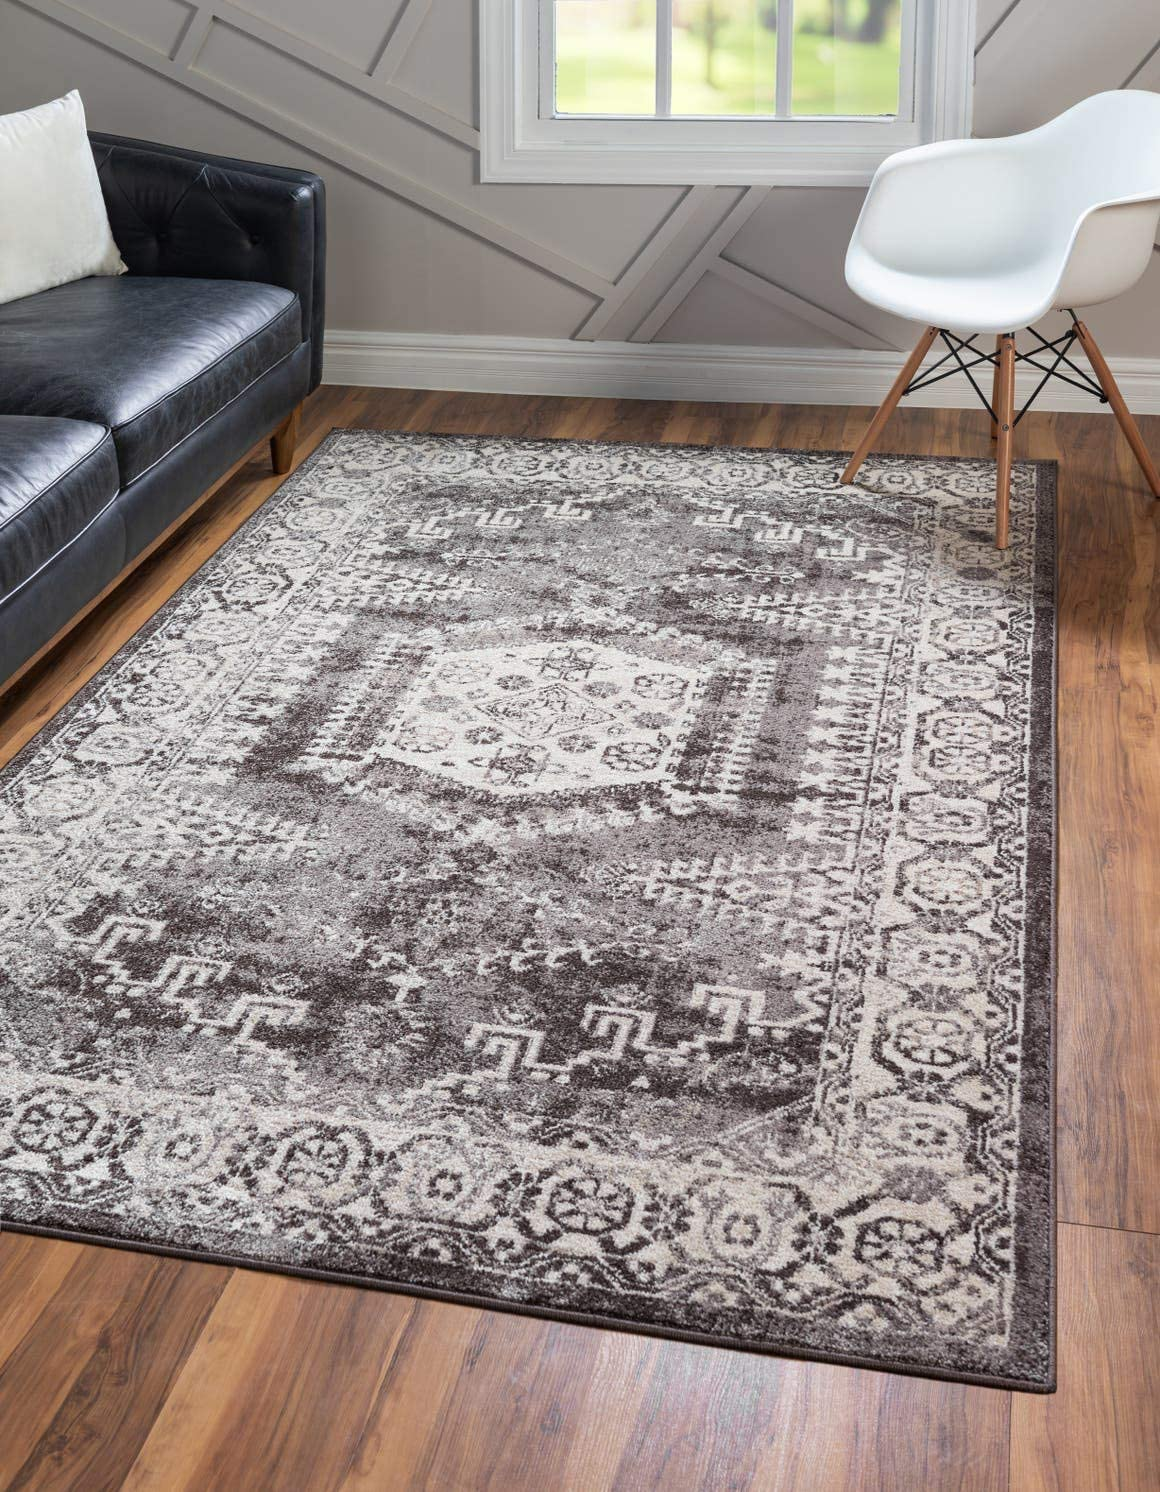 Unique Loom Utopia Collection Traditional Geometric Tribal Warm Tones Dark Brown Area Rug 2 2 x 3 0